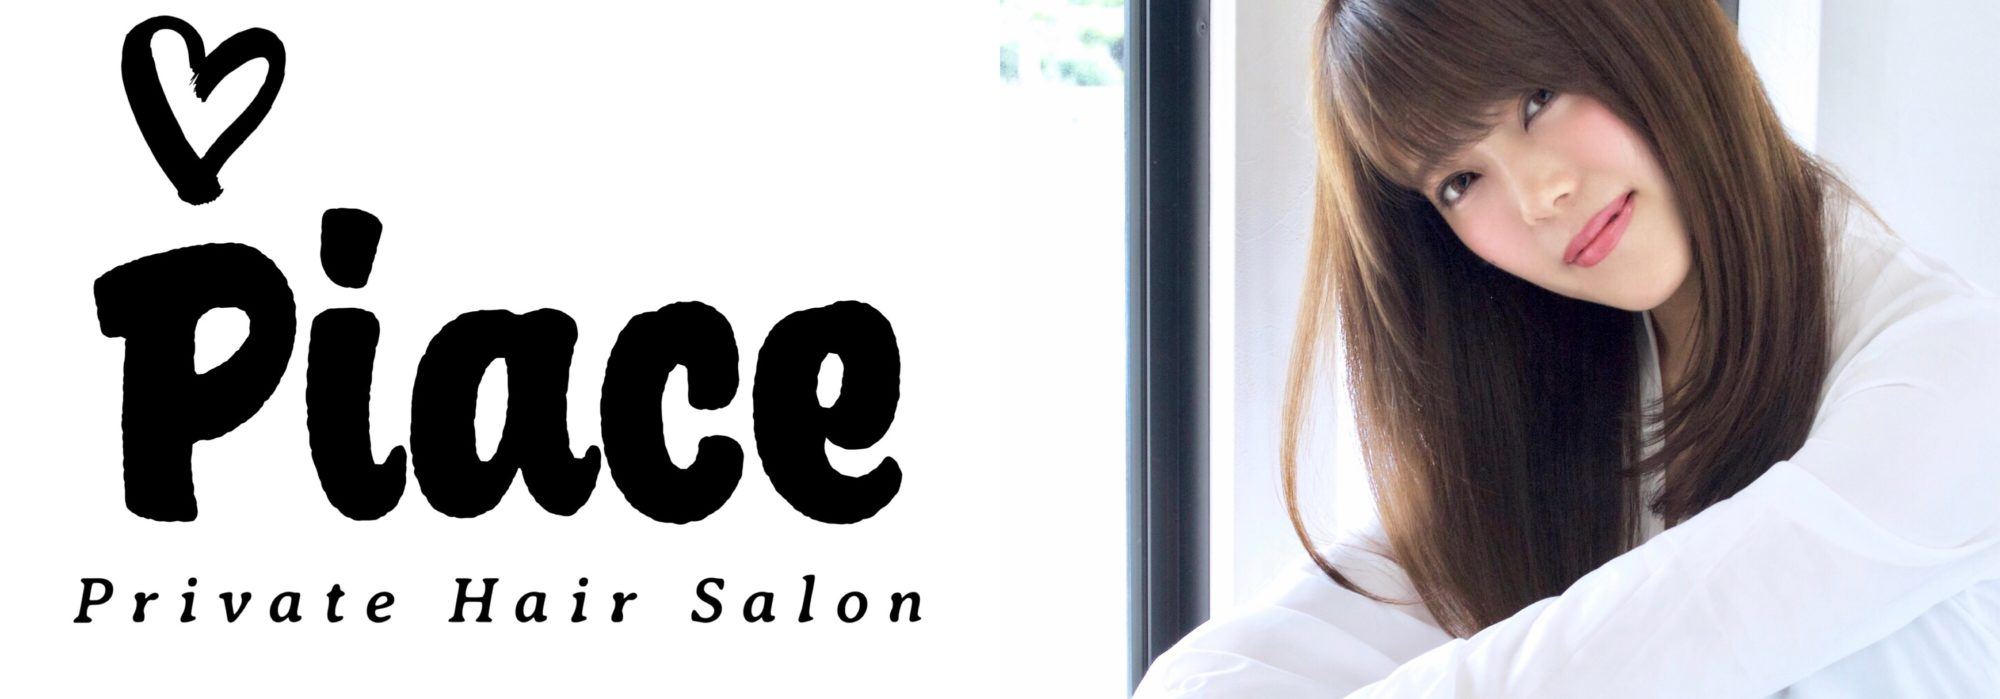 Private Hair Salon Piace